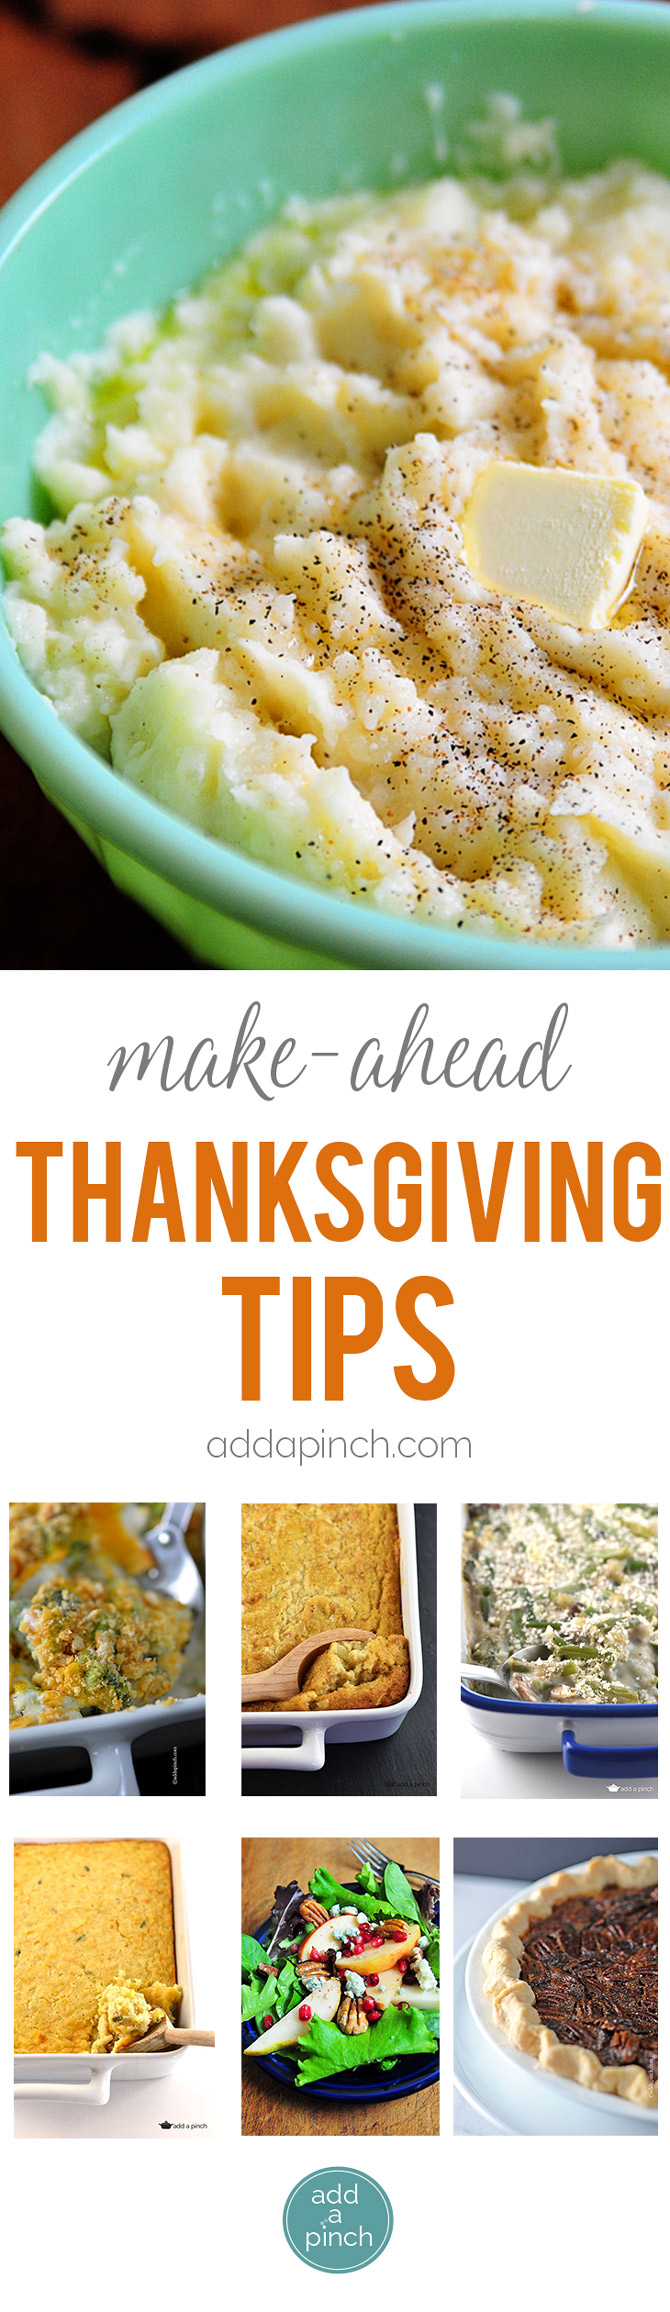 Make ahead Thanksgiving tips so you can plan a beautiful Thanksgiving meal that allows you to truly enjoy the day! // addapinch.com